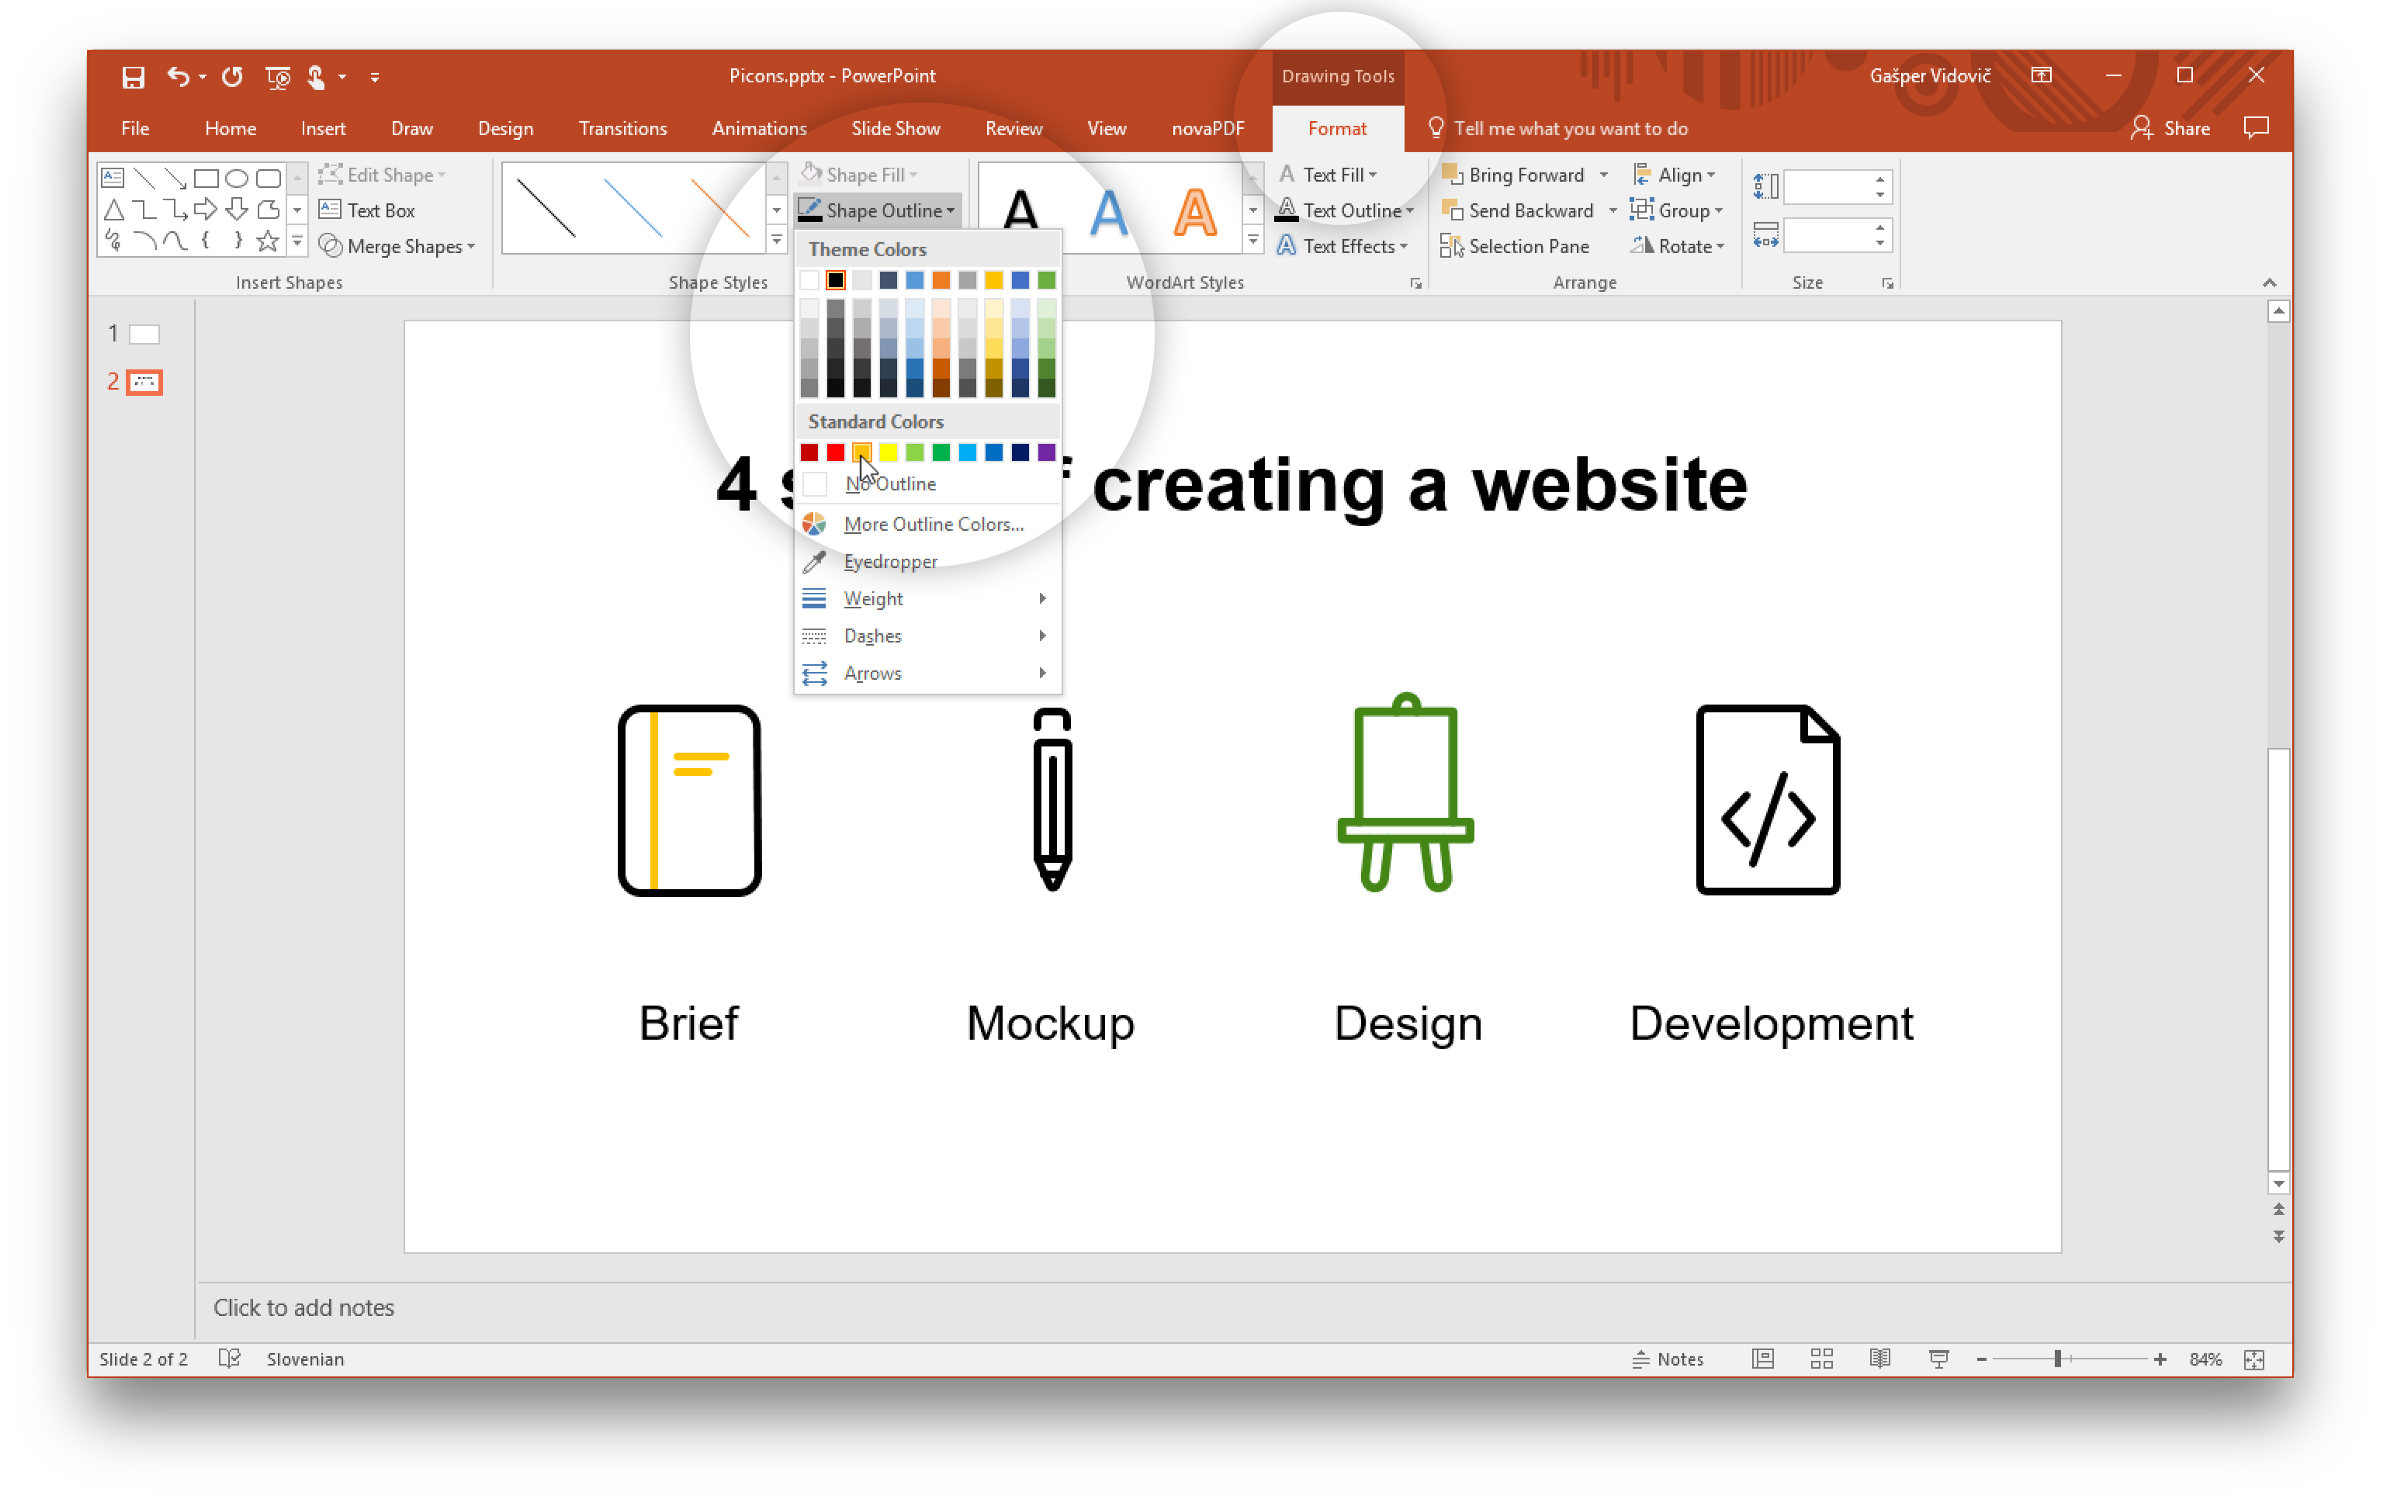 powerpoint 2010 download for windows 10